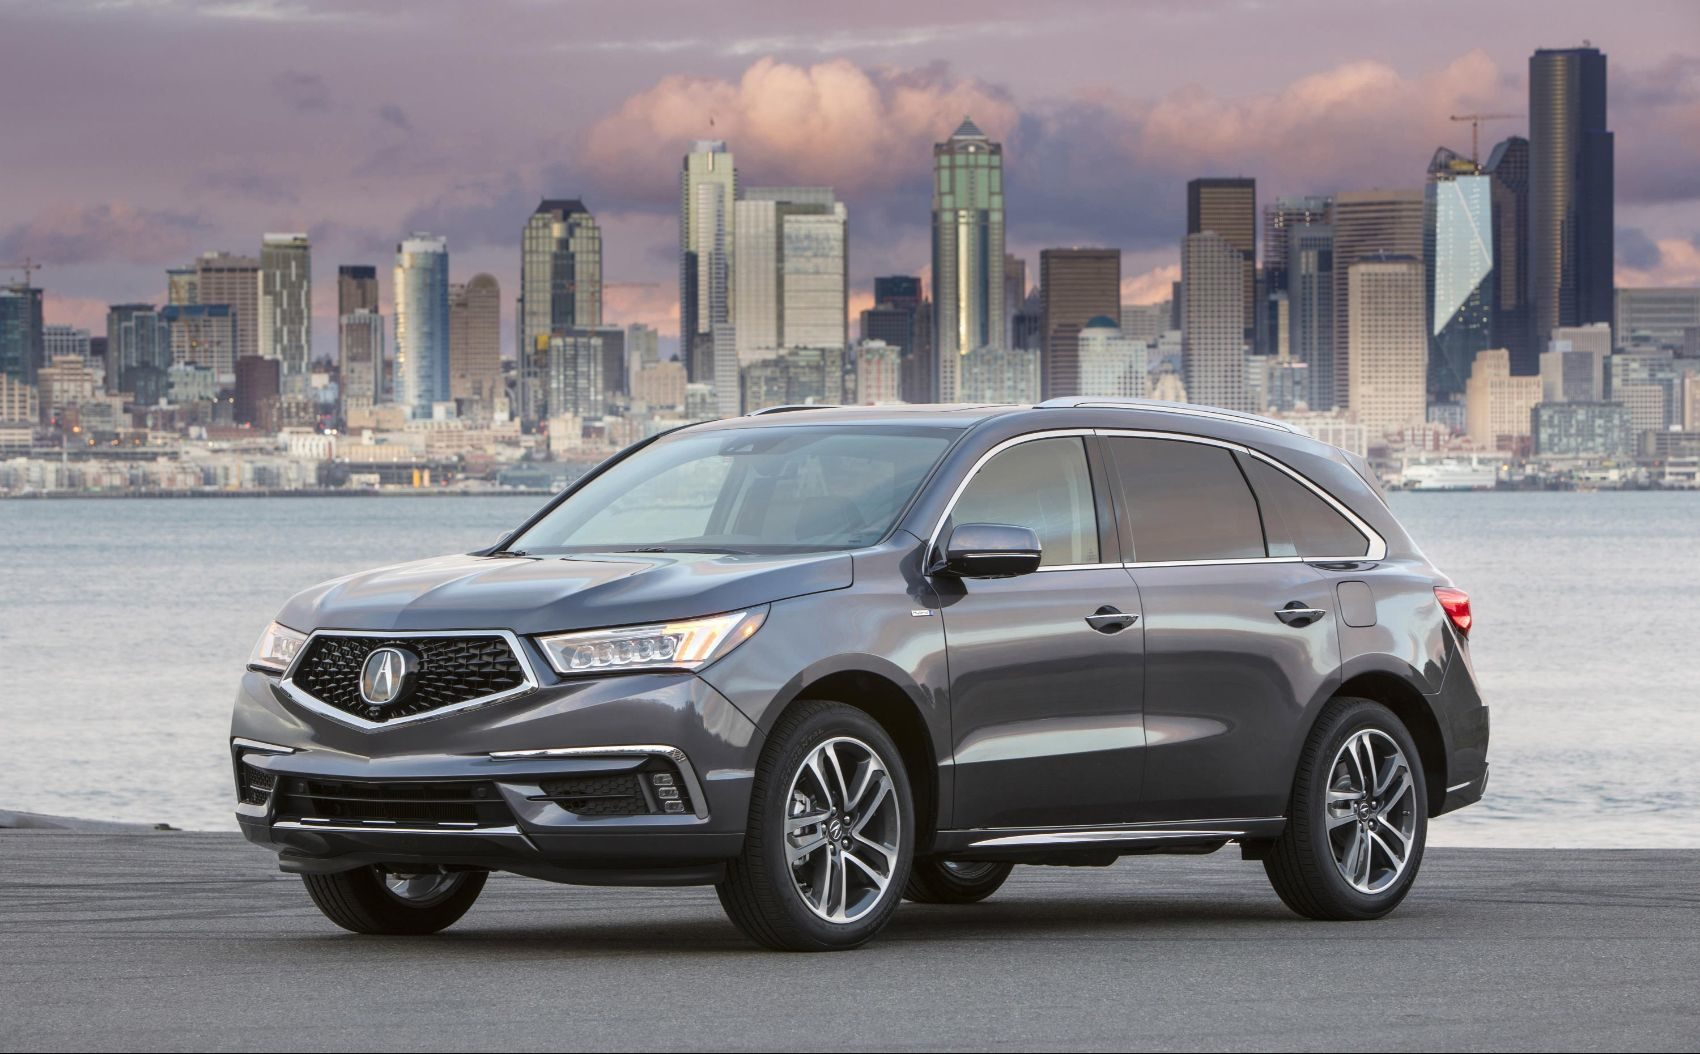 37 Gallery of Acura Mdx 2020 Changes Release Date with Acura Mdx 2020 Changes